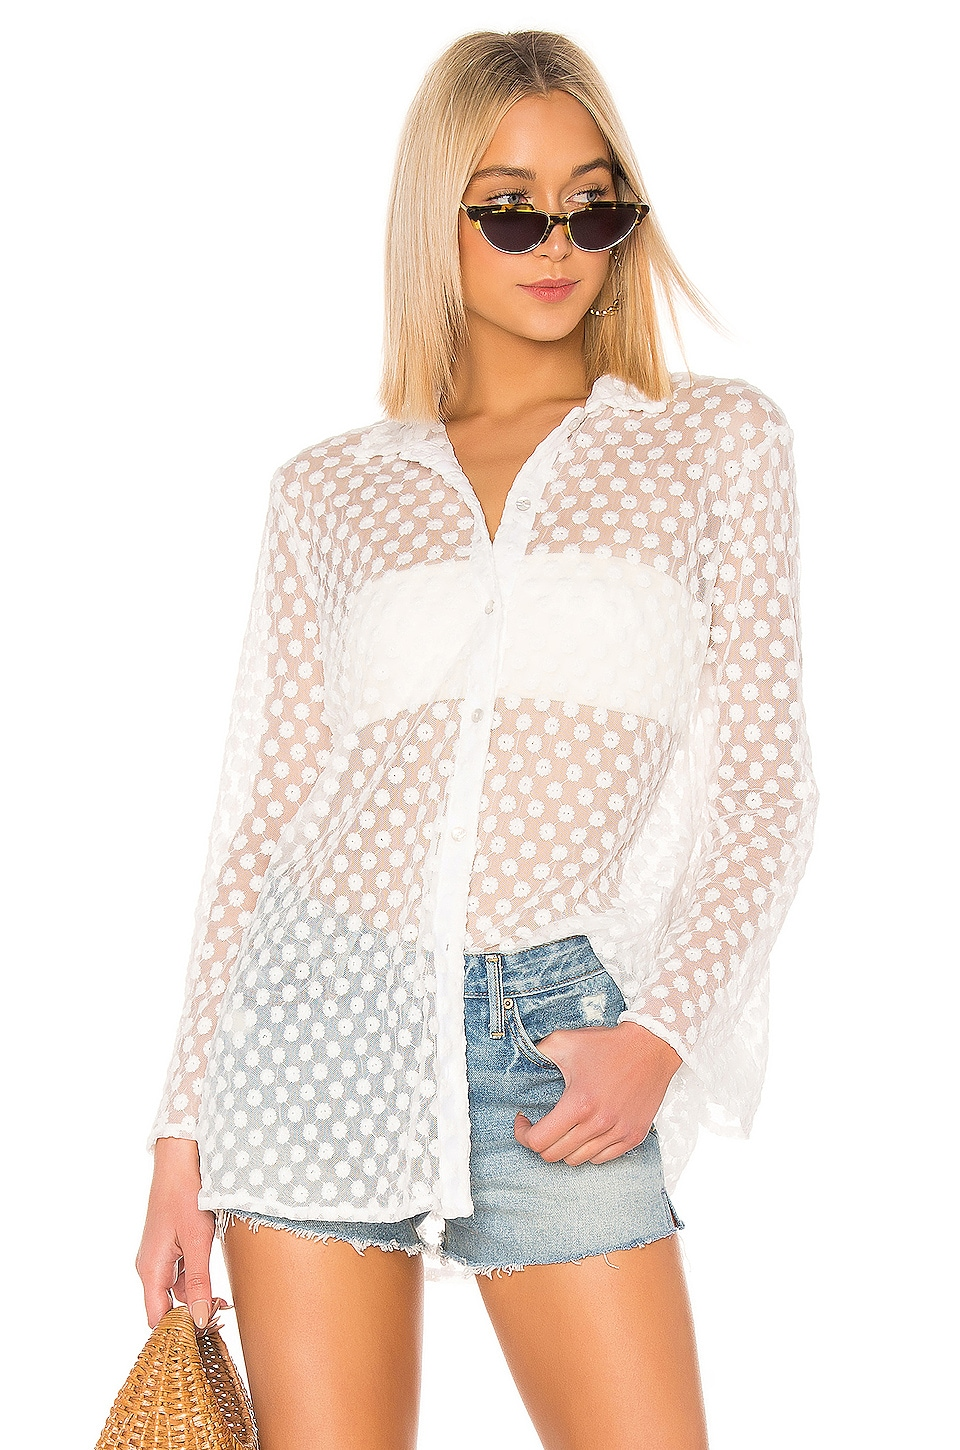 LPA Yvette Shirt in White